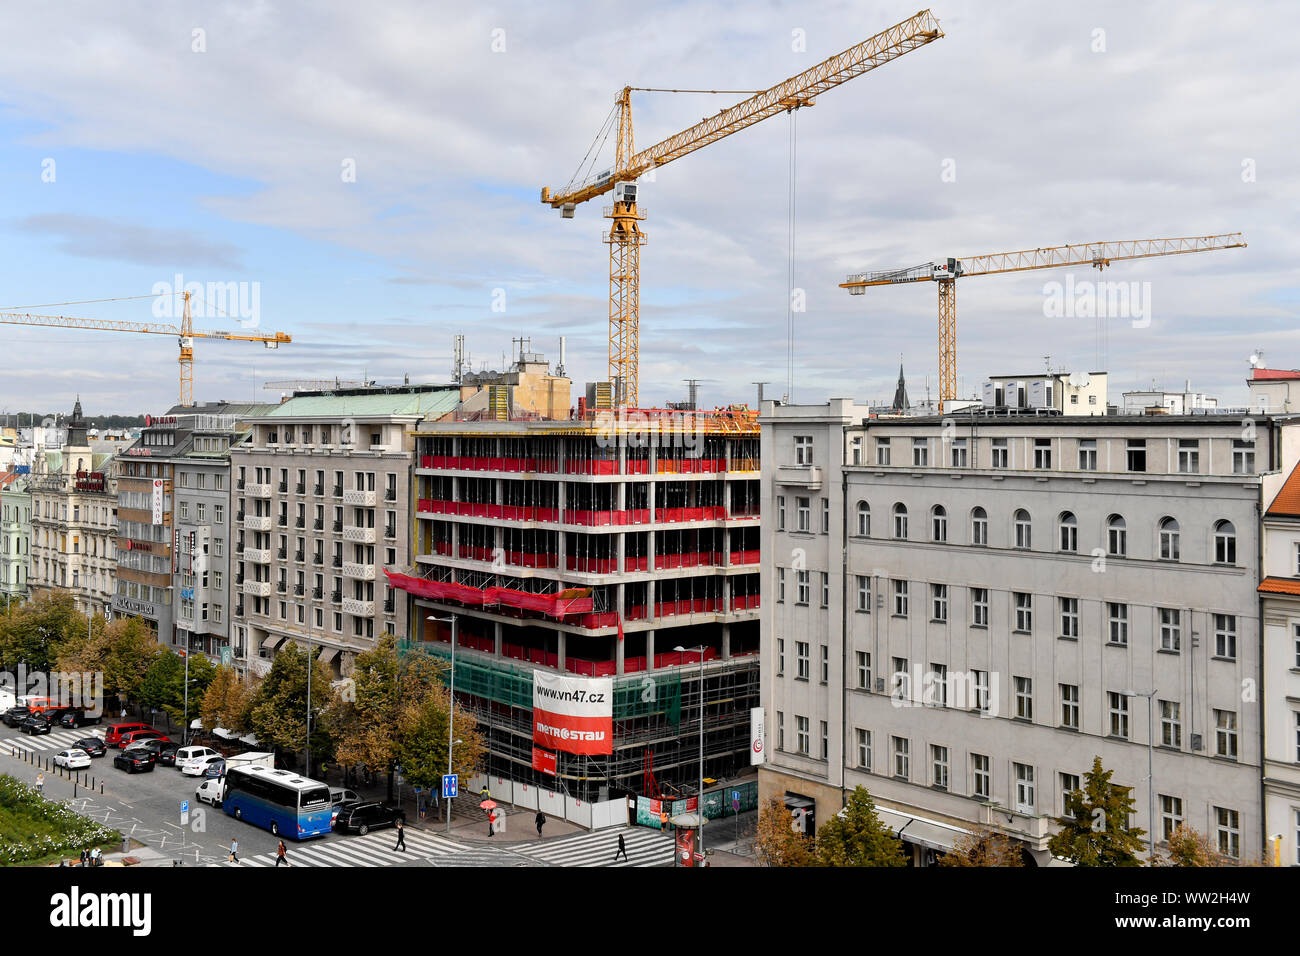 The Flow Building construction site on the corner of Opletalova street and Wenceslas Square, Prague, Czech Republic, September 12, 2019. The building, Stock Photo